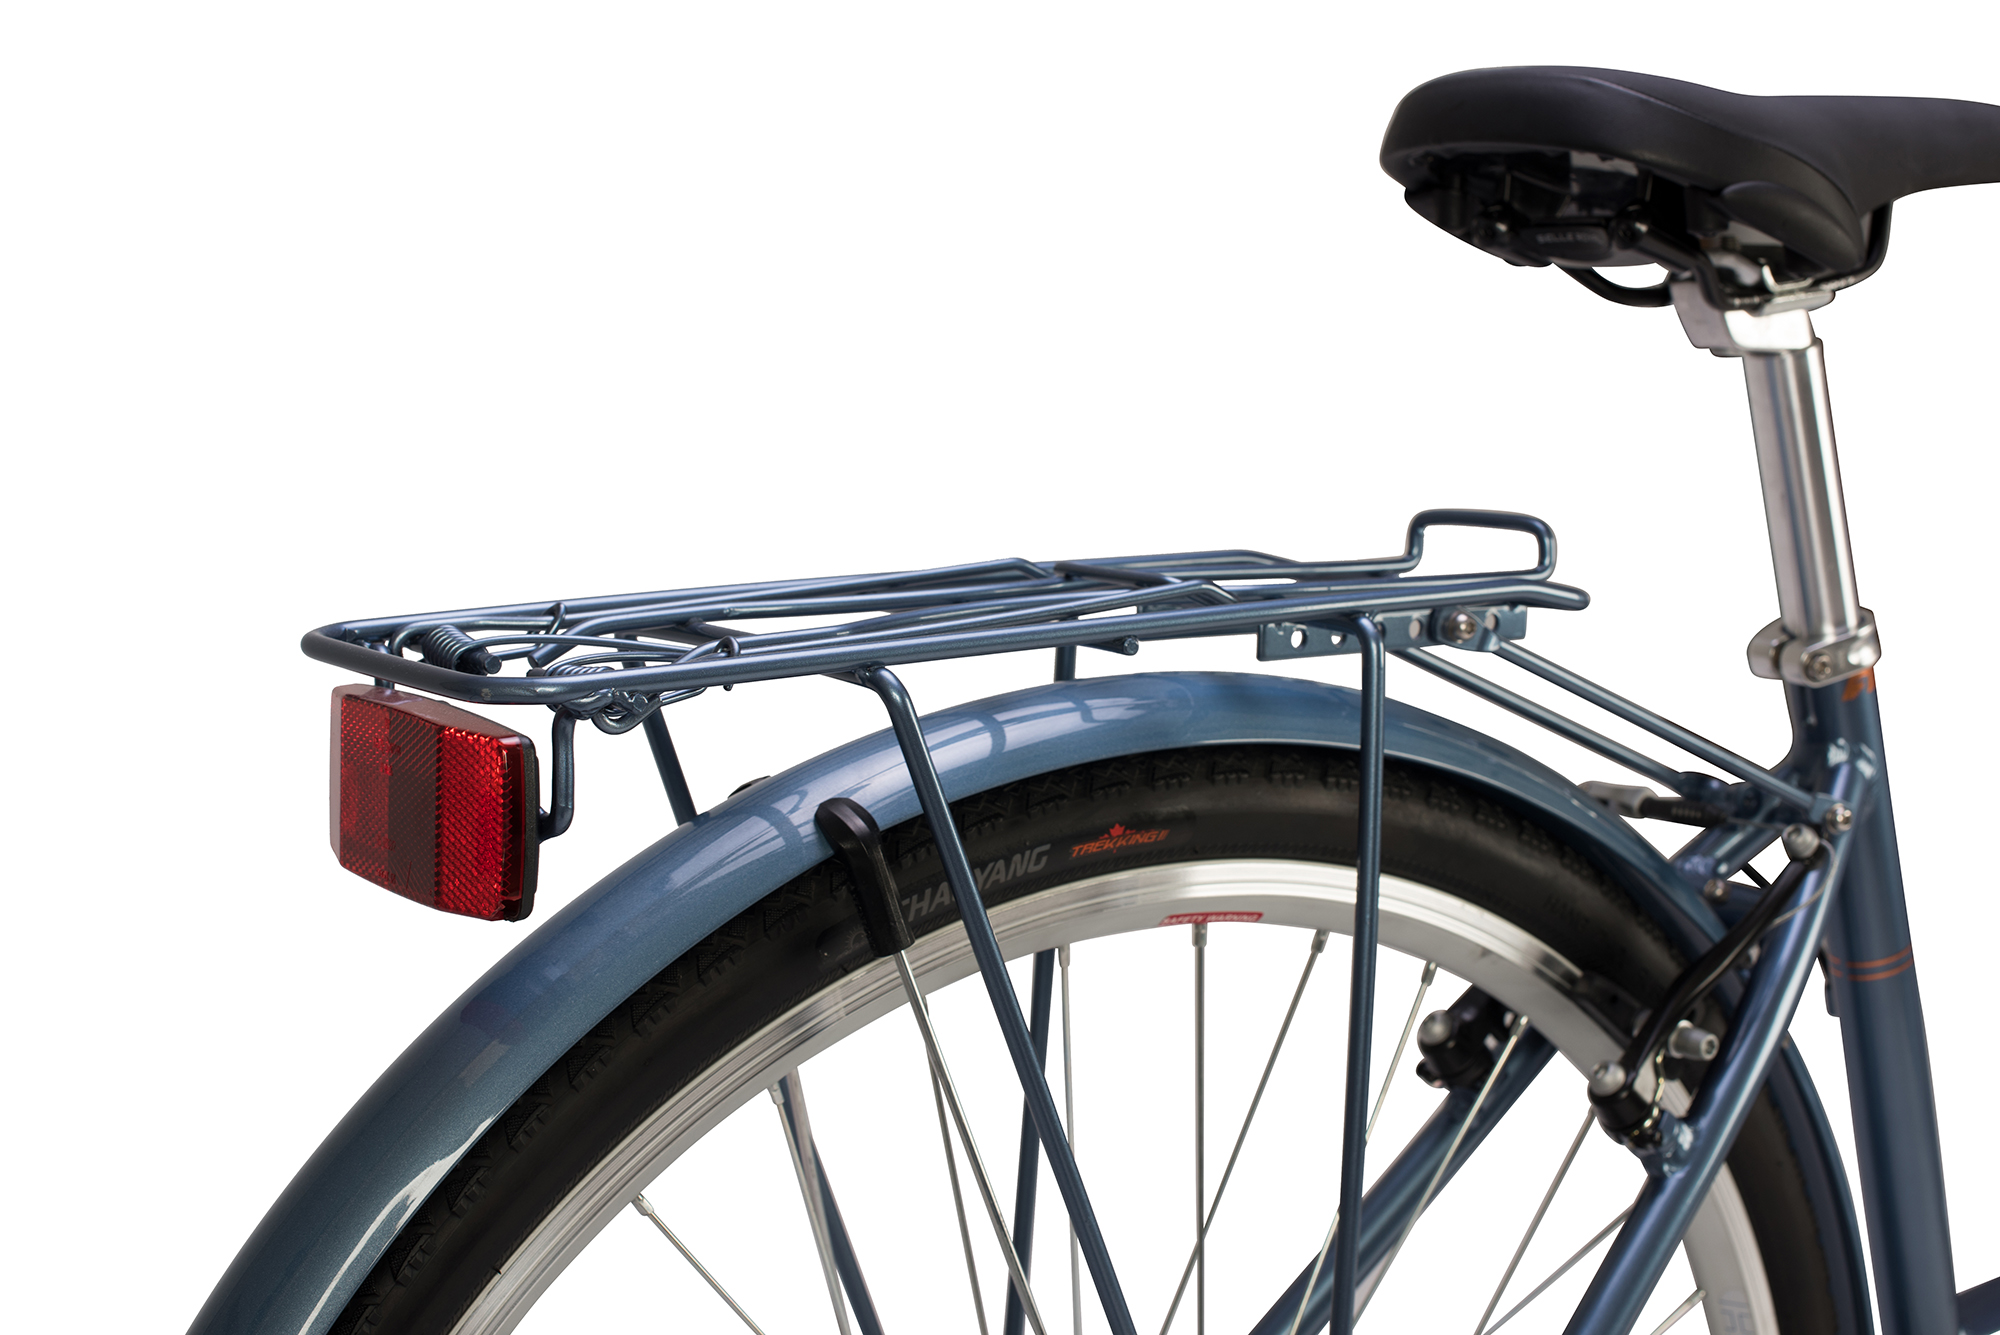 View of the rear luggage rack on the Raleigh Pioneer low step bike in grey